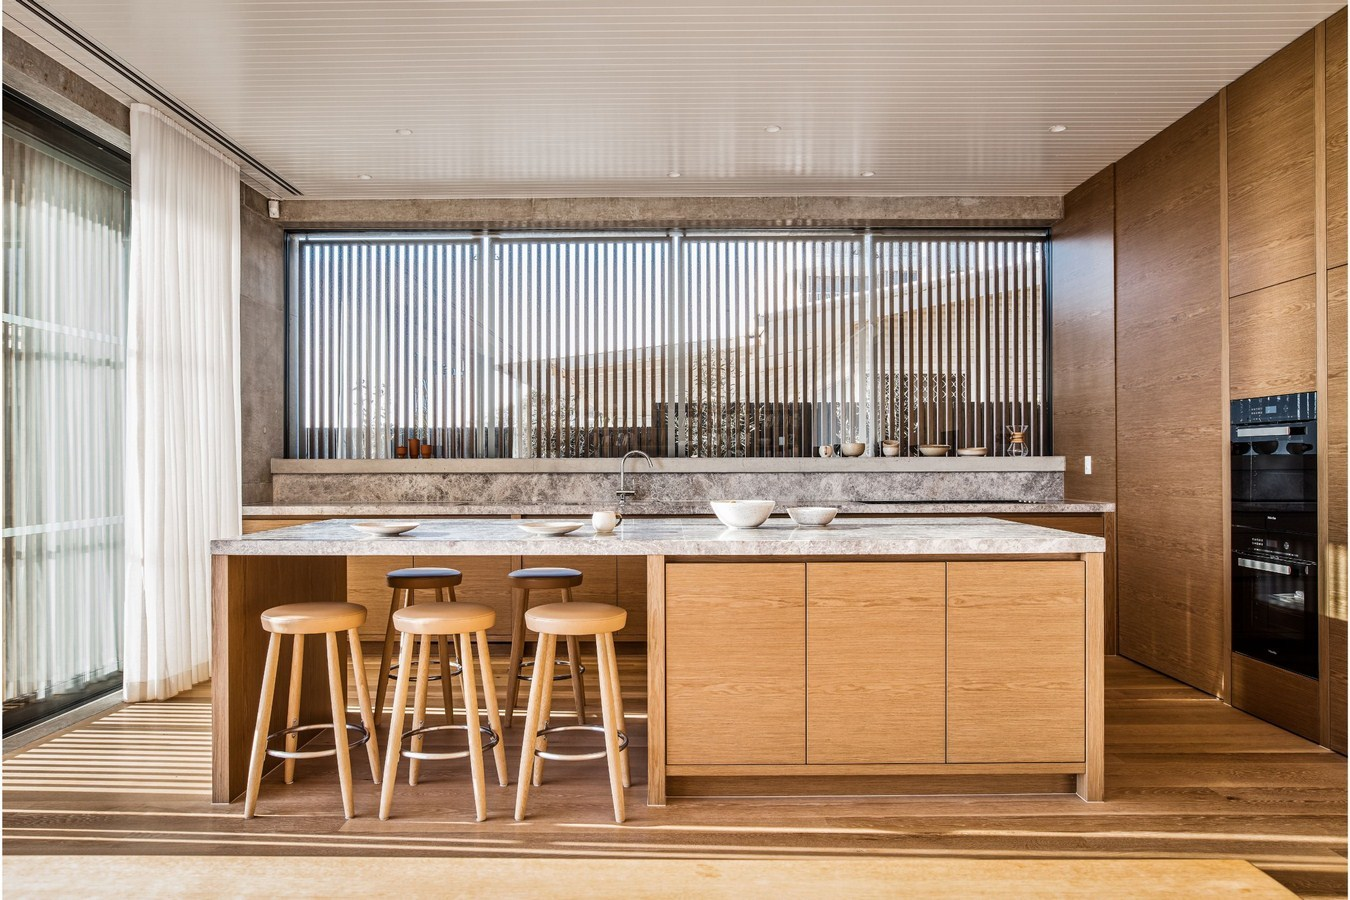 2018 Mermaid Beach Residence By B.E Architecture - Sheet7